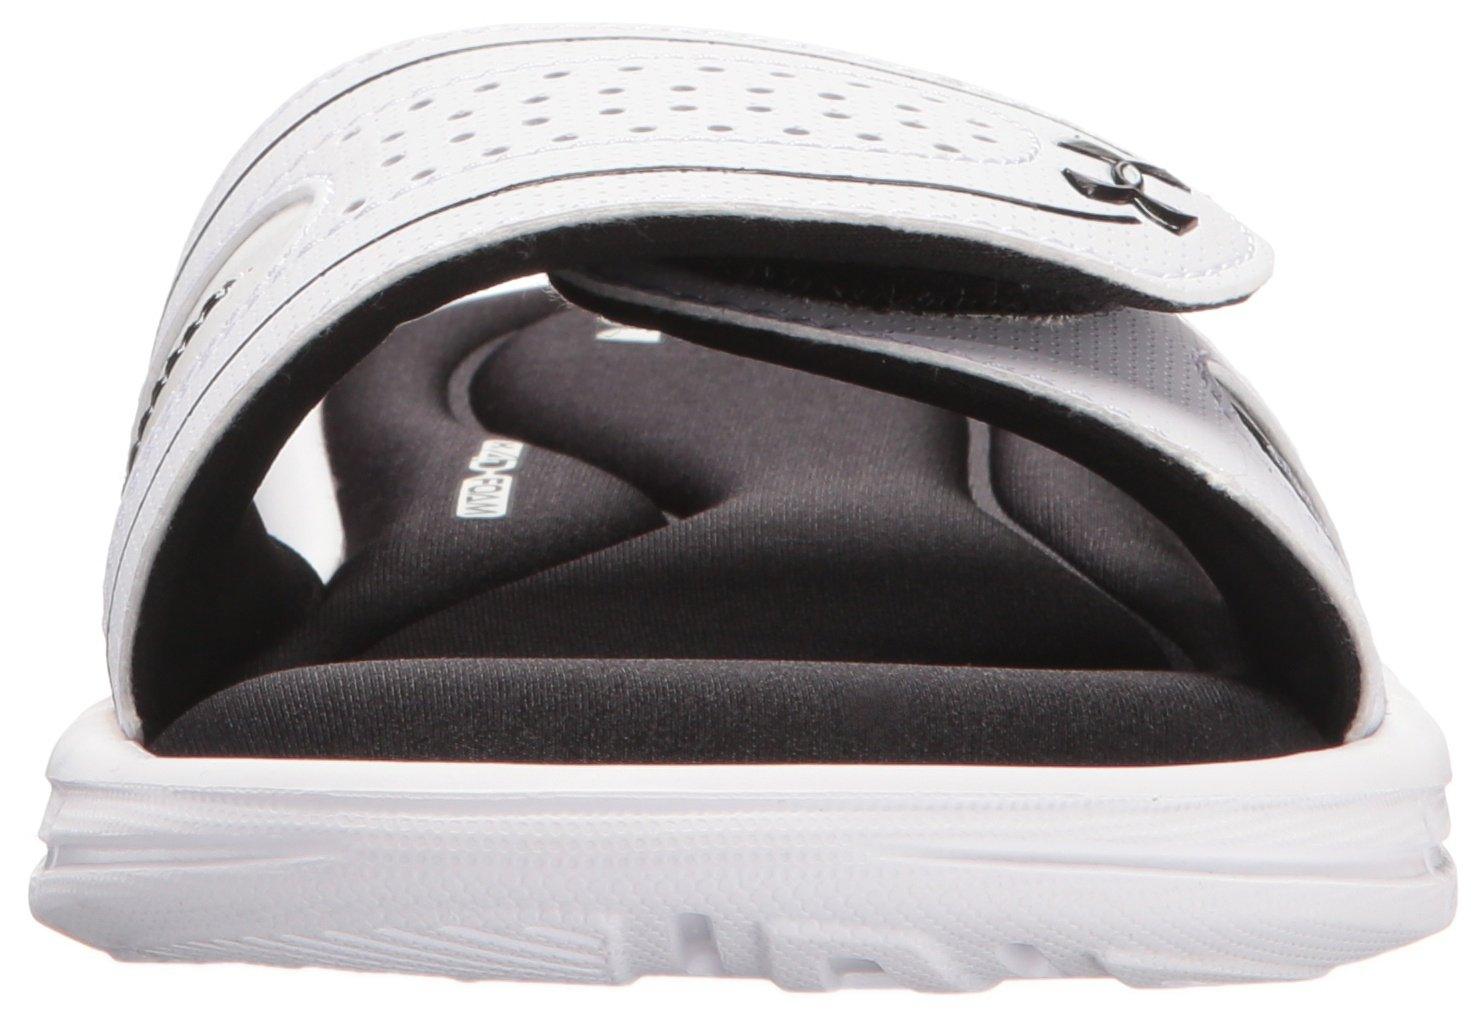 Under Armour Women's Ignite VIII M Slide Sandal B01GSYTUYS 9 M VIII US|White (100)/Black c4fb61